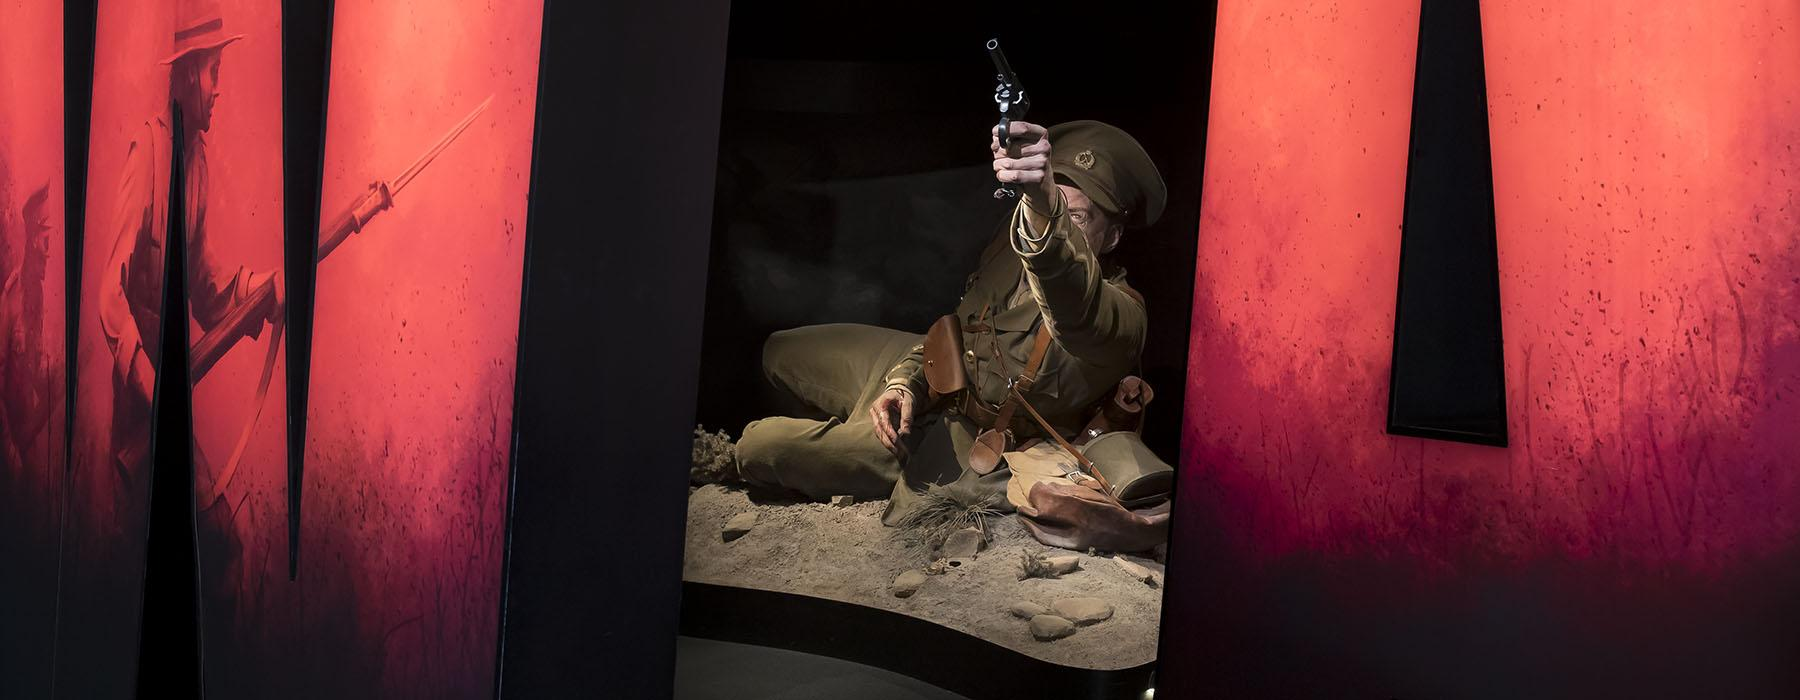 View looking through the entrance of the exhibition, Gallipoli: The Scale of Our War, showing a large wounded soldier drawing his gun